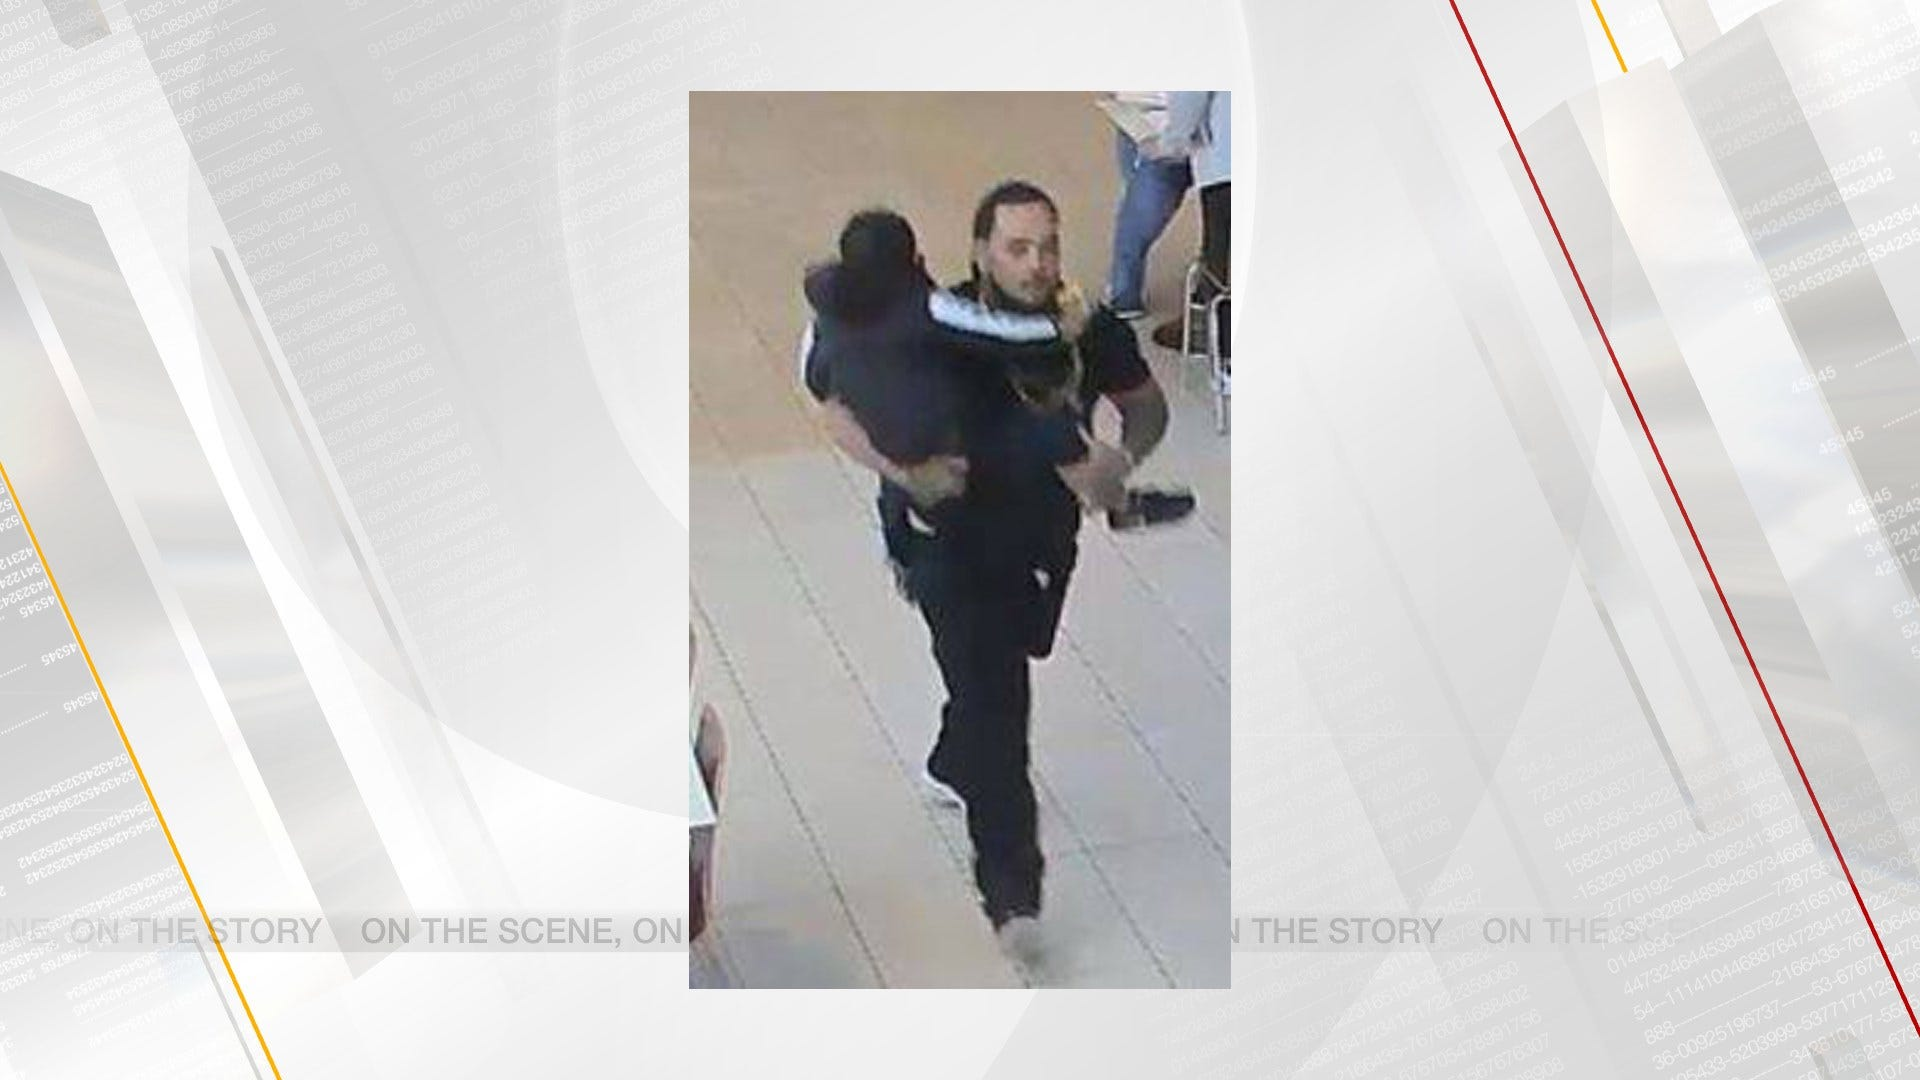 Penn Square Mall Stabbing Suspect Photo Released